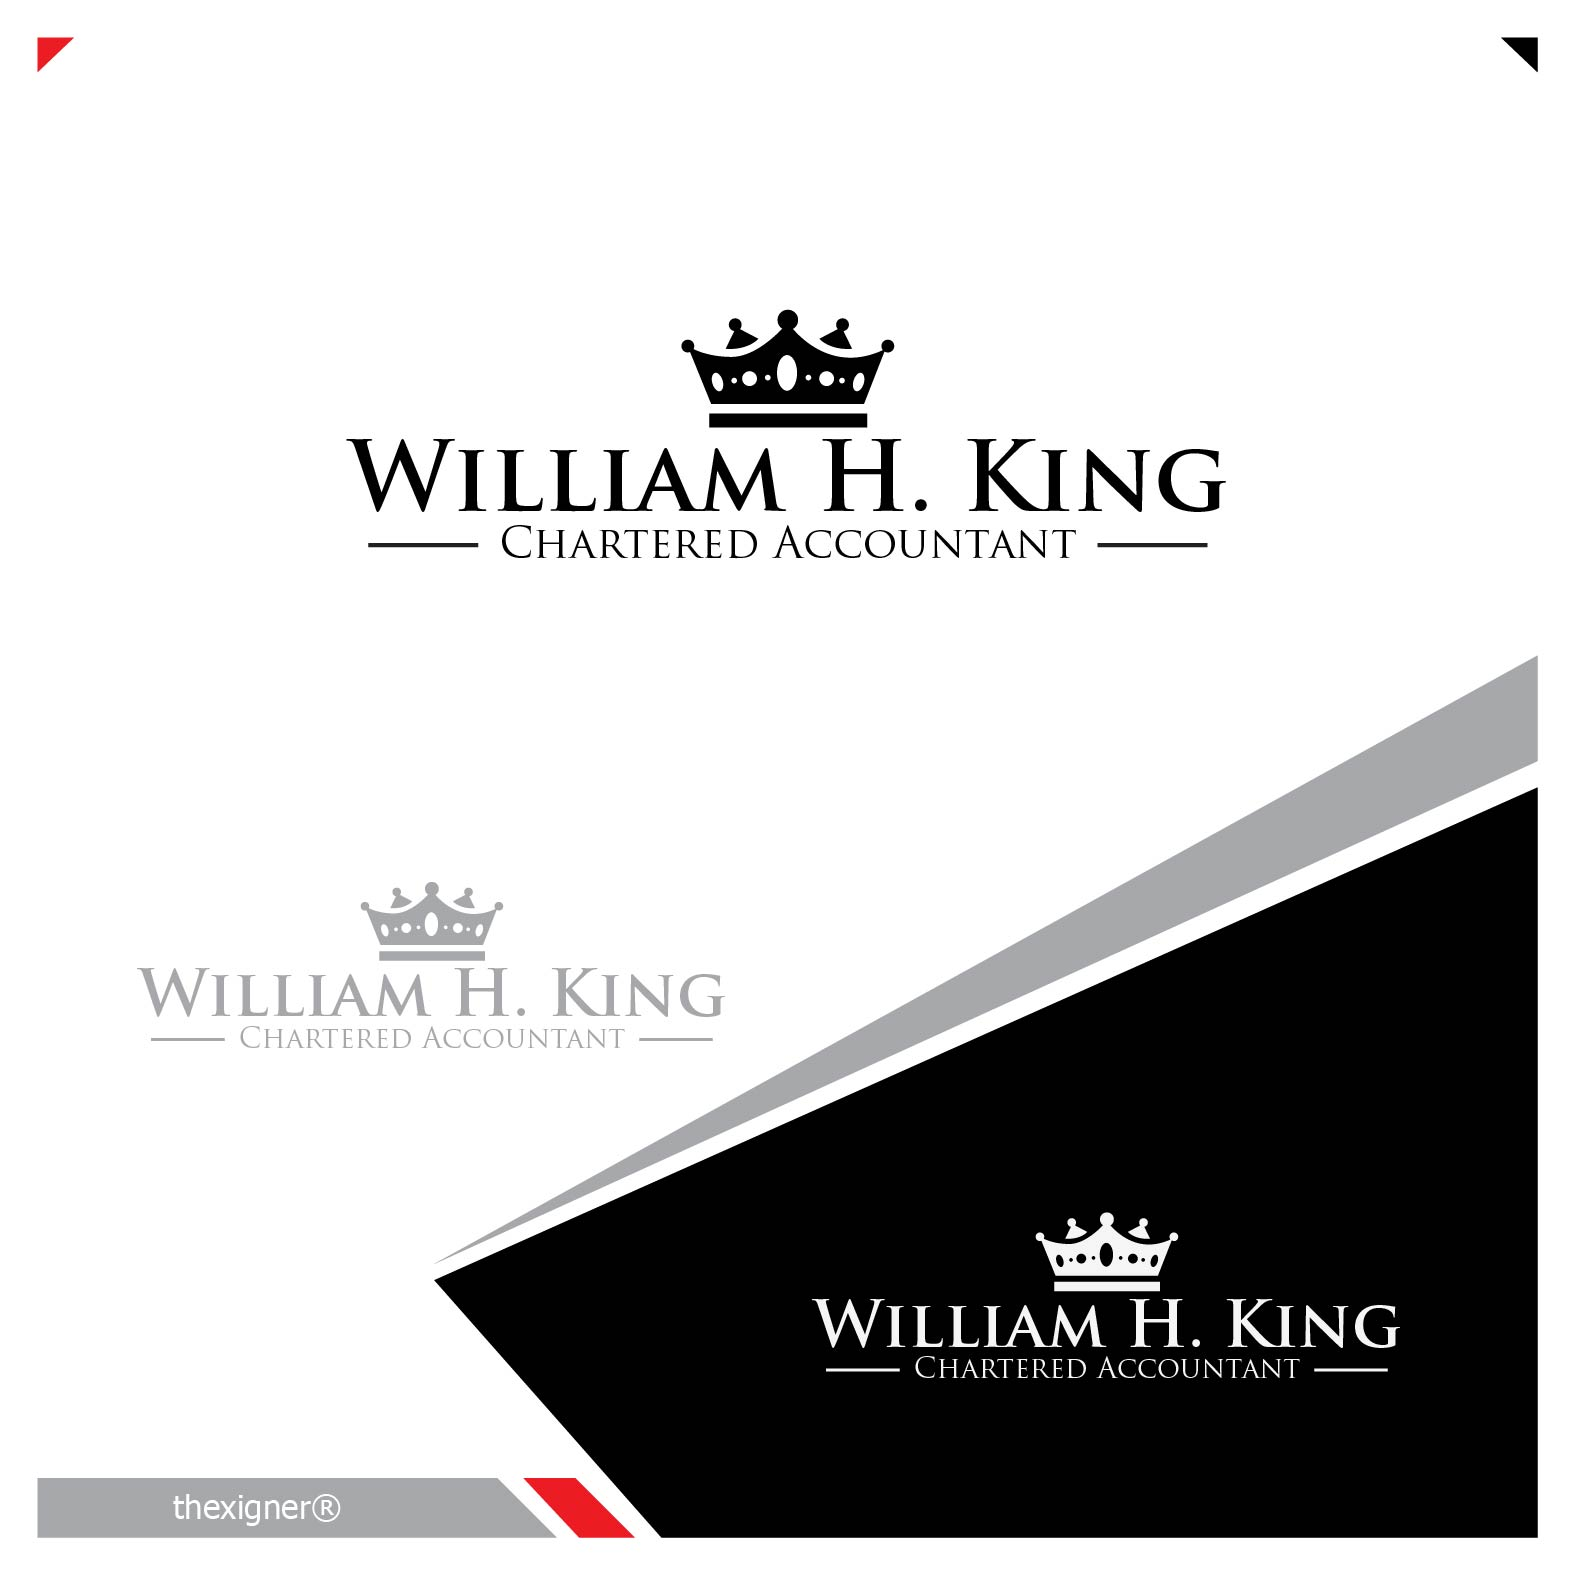 Logo Design by lagalag - Entry No. 60 in the Logo Design Contest New Logo Design for William H. King, Chartered Accountant.